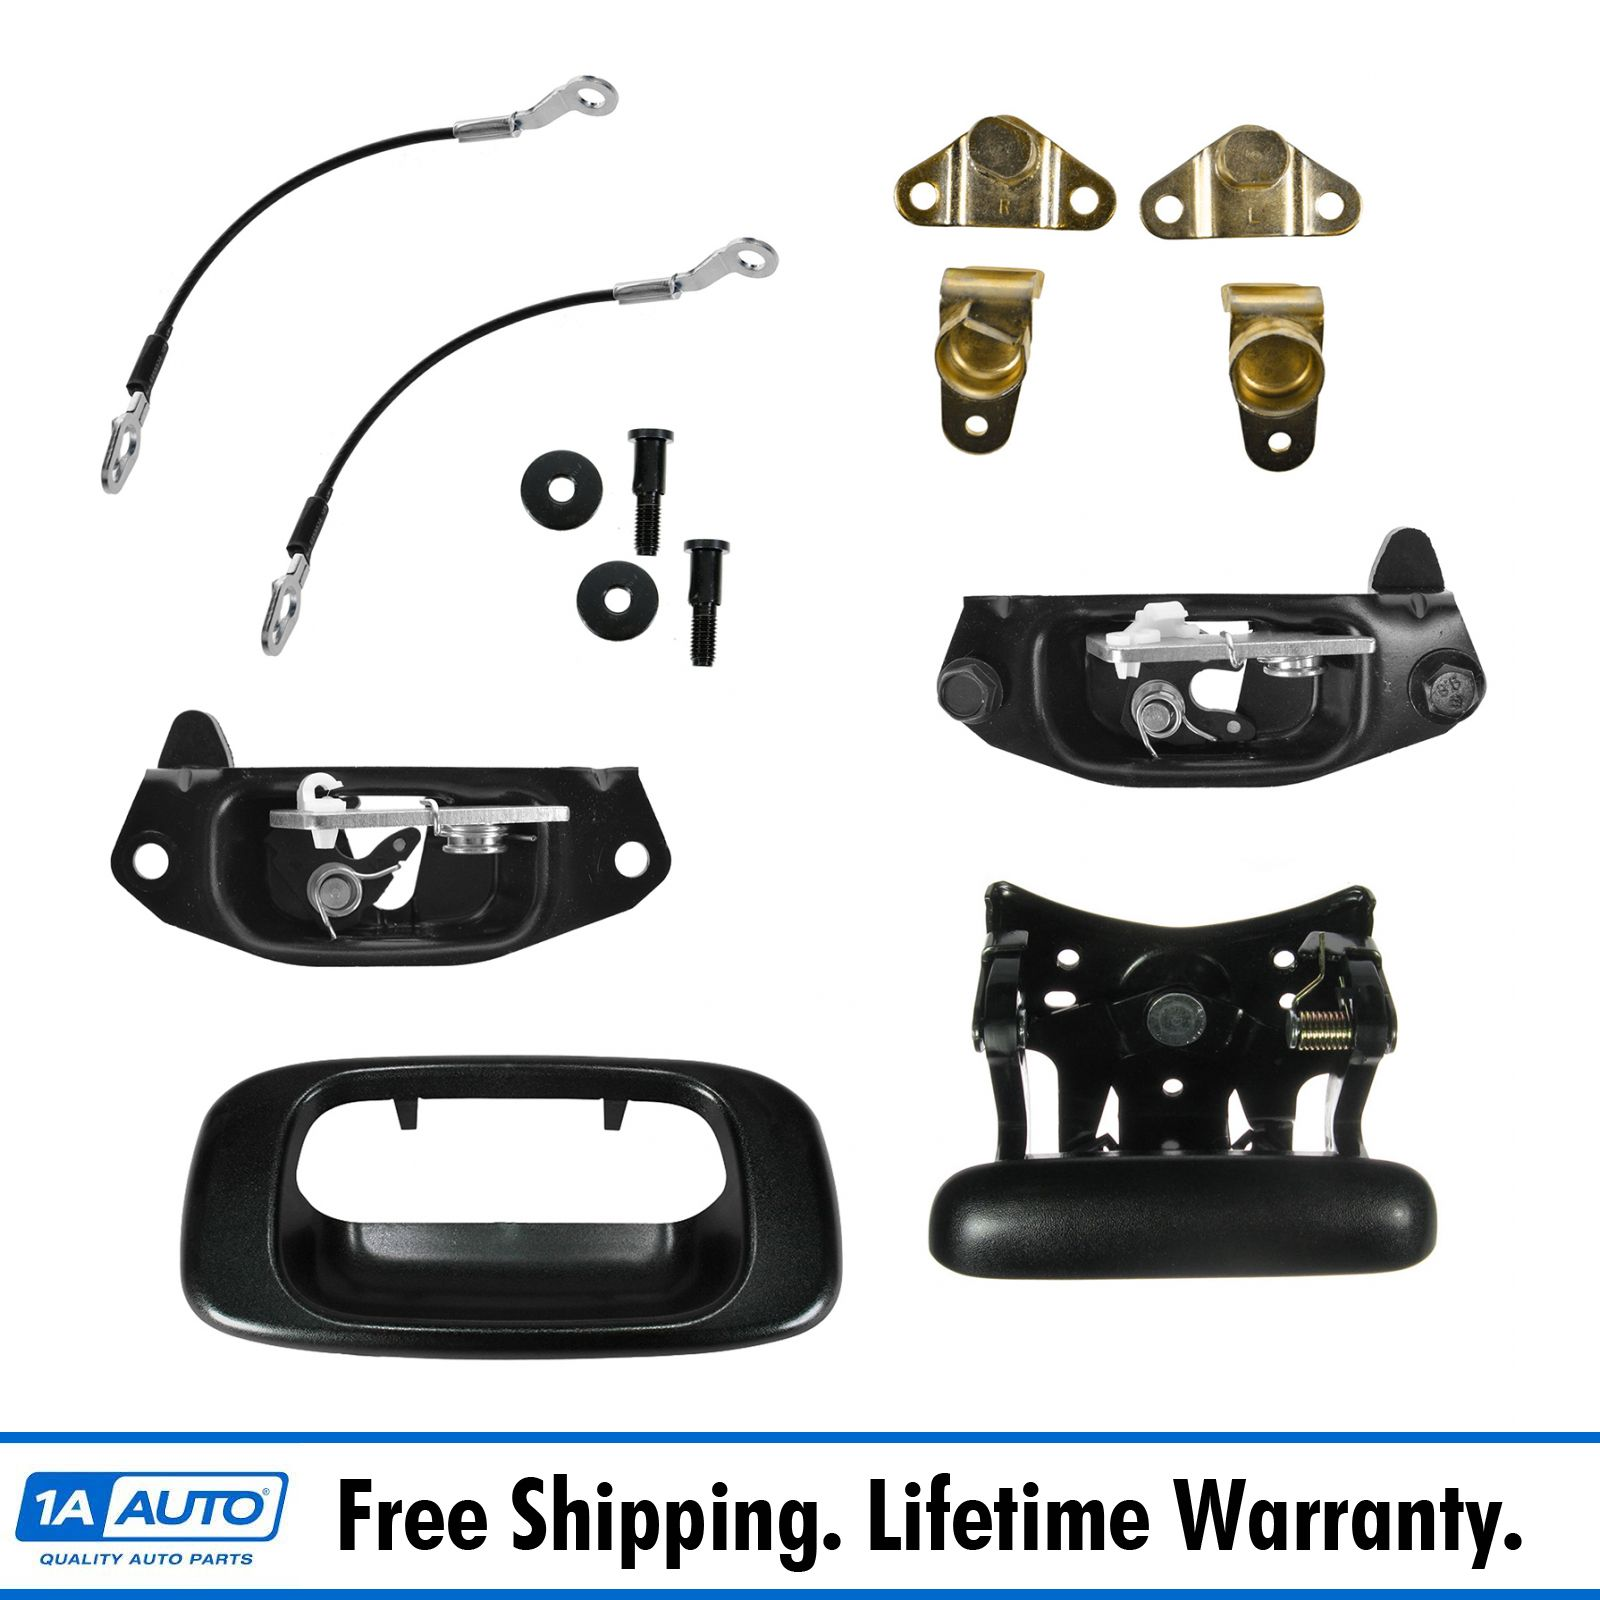 FEXON Rear Tailgate Latch Lock Handle Bezel Cable Kits Replacement for Chevy Avalanche Silverado GMC Sierra 1500 2500 3500 HD 1999-2006 Cadillac Escalade EXT 2002-2006 Replace 15921948 15921949